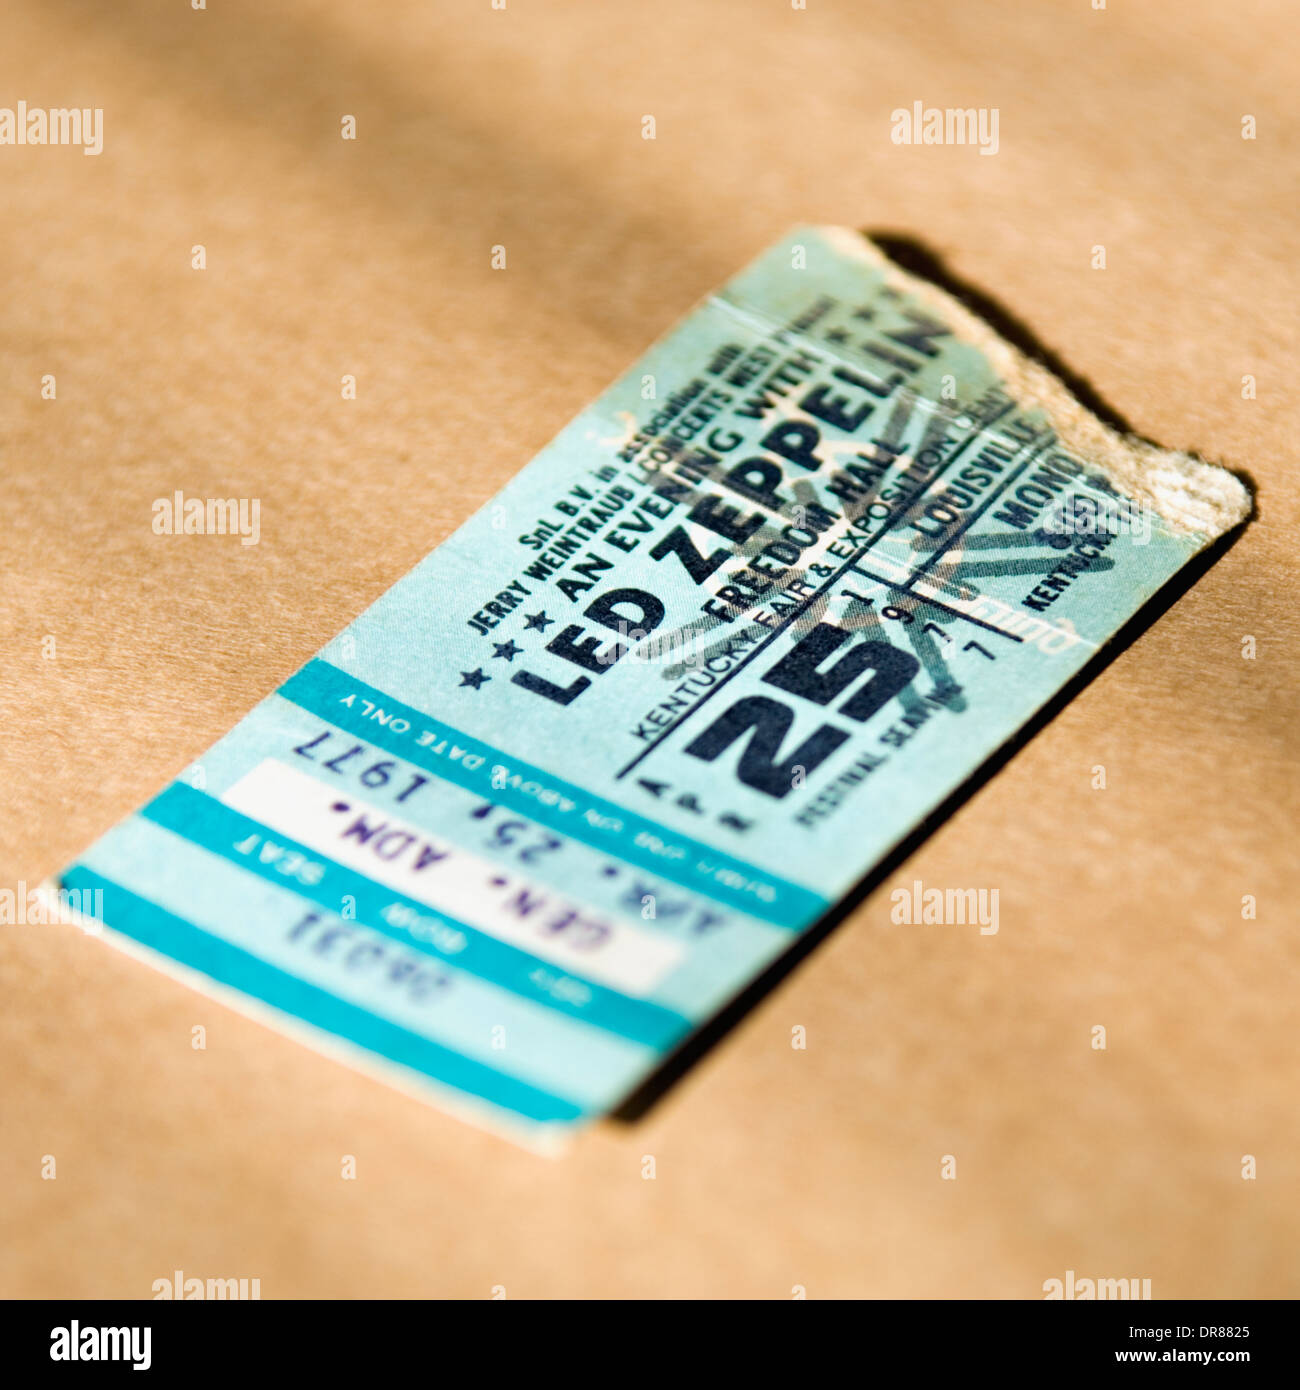 Led Zeppelin Ticket Stub from 1977 - Stock Image